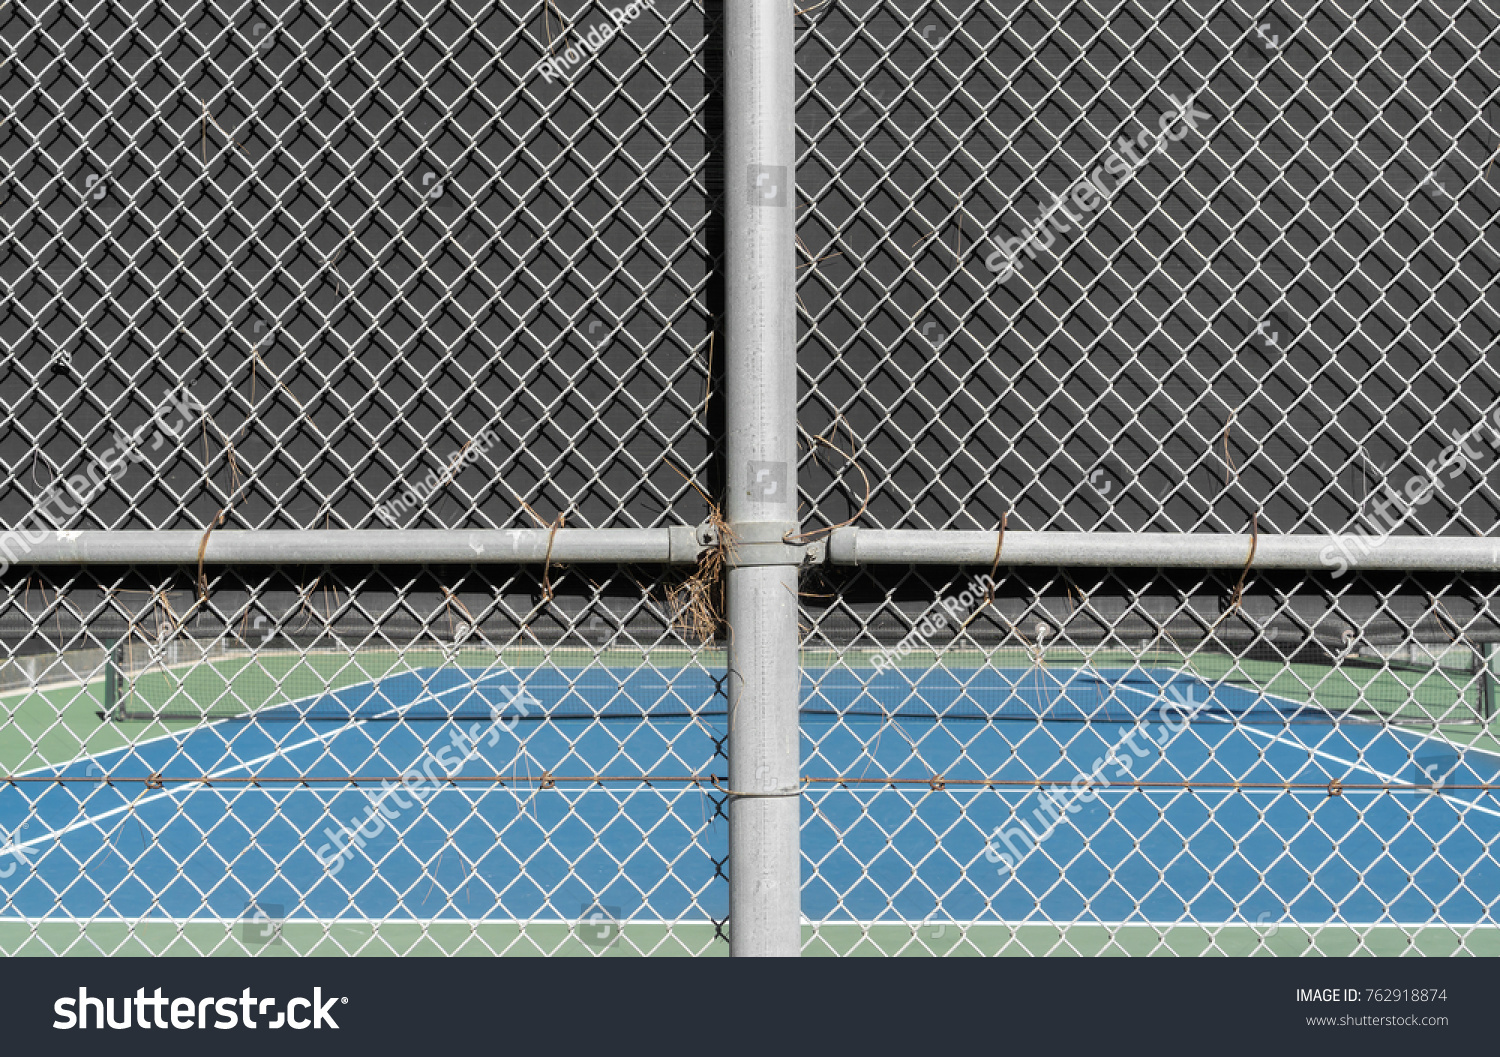 Outdoor Tennis Court Chain Link Fence Stock Photo (Edit Now ...